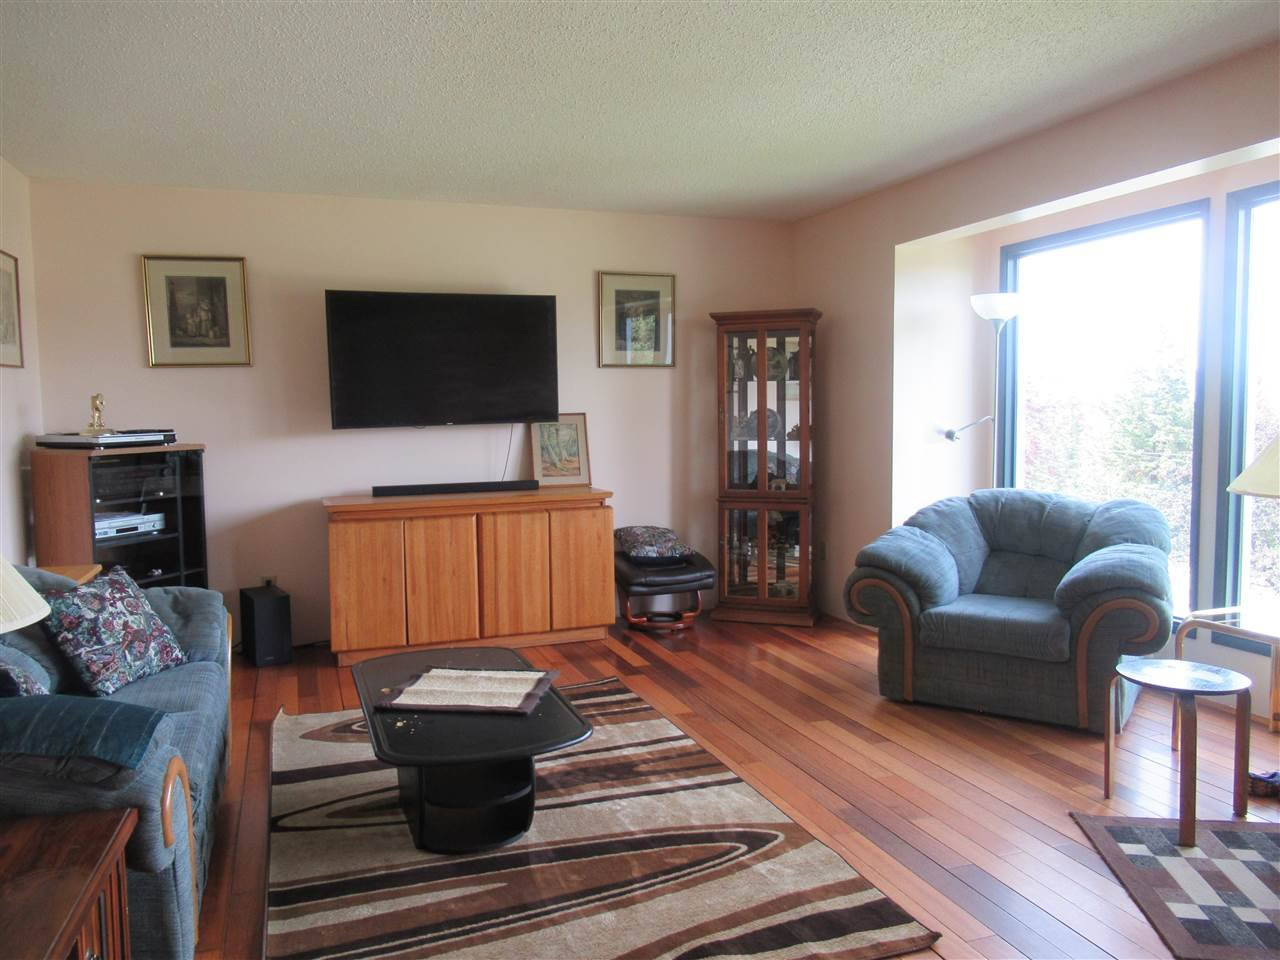 Photo 6: Photos: 607 ROBERTS Drive in Williams Lake: Esler/Dog Creek House for sale (Williams Lake (Zone 27))  : MLS®# R2391926